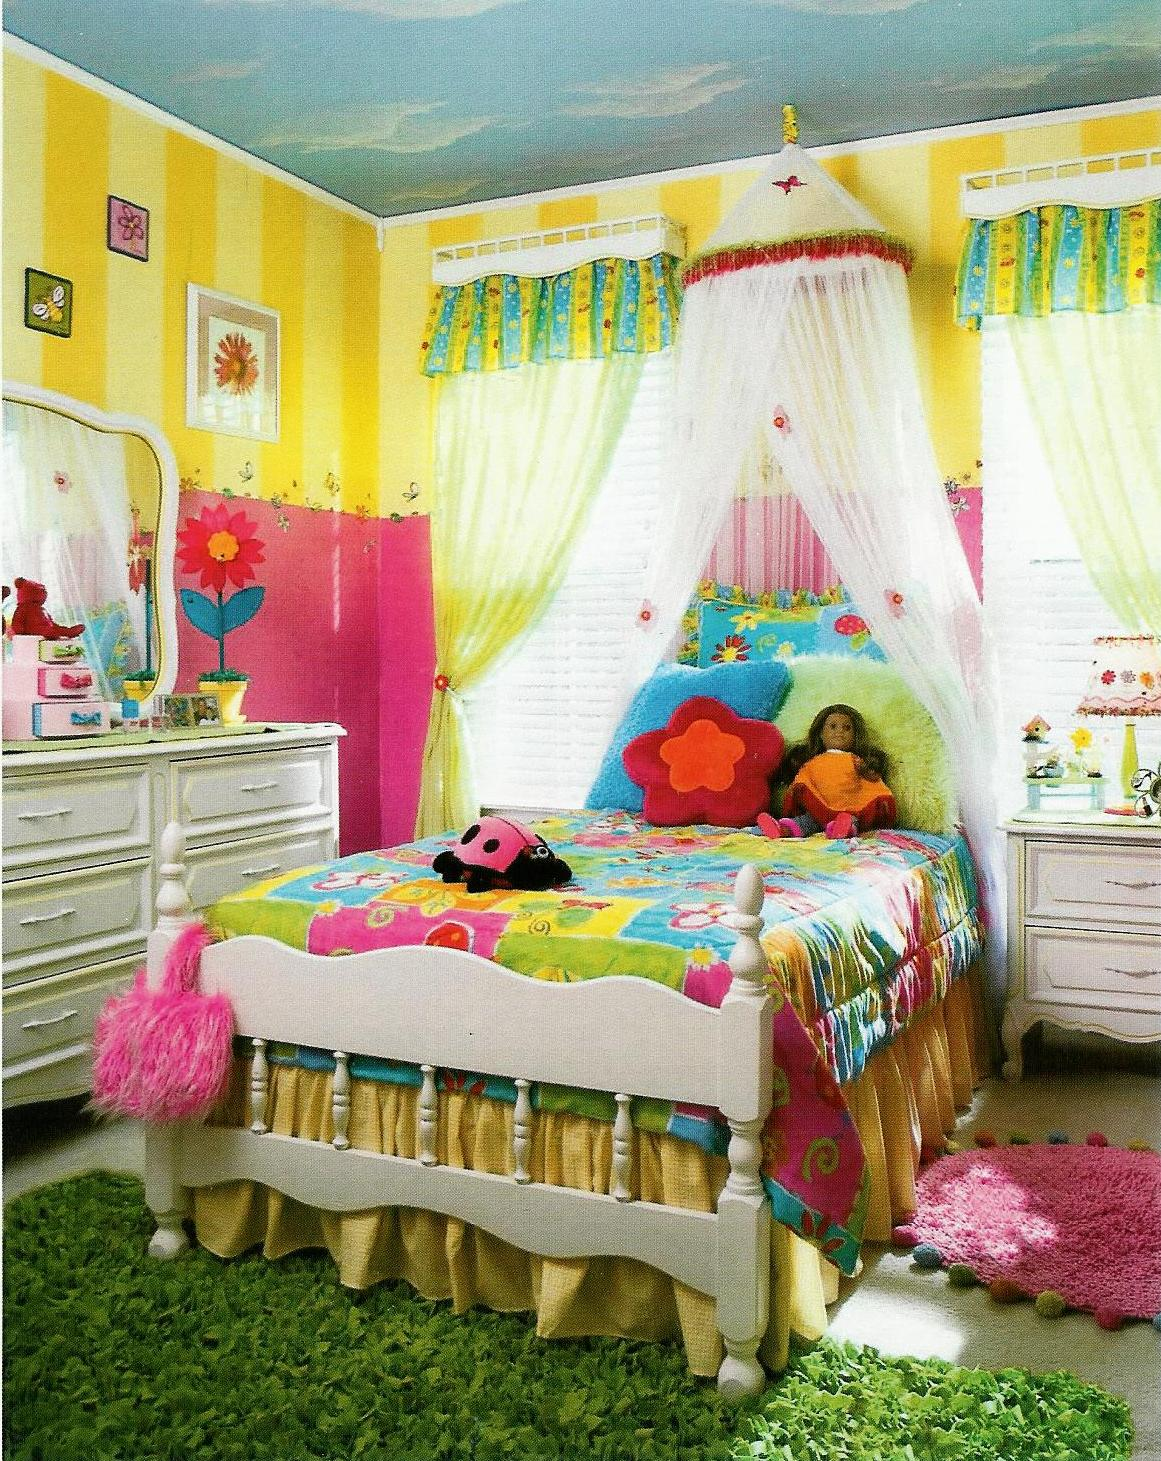 Kids rooms decorations 2017 grasscloth wallpaper for Kid room decor